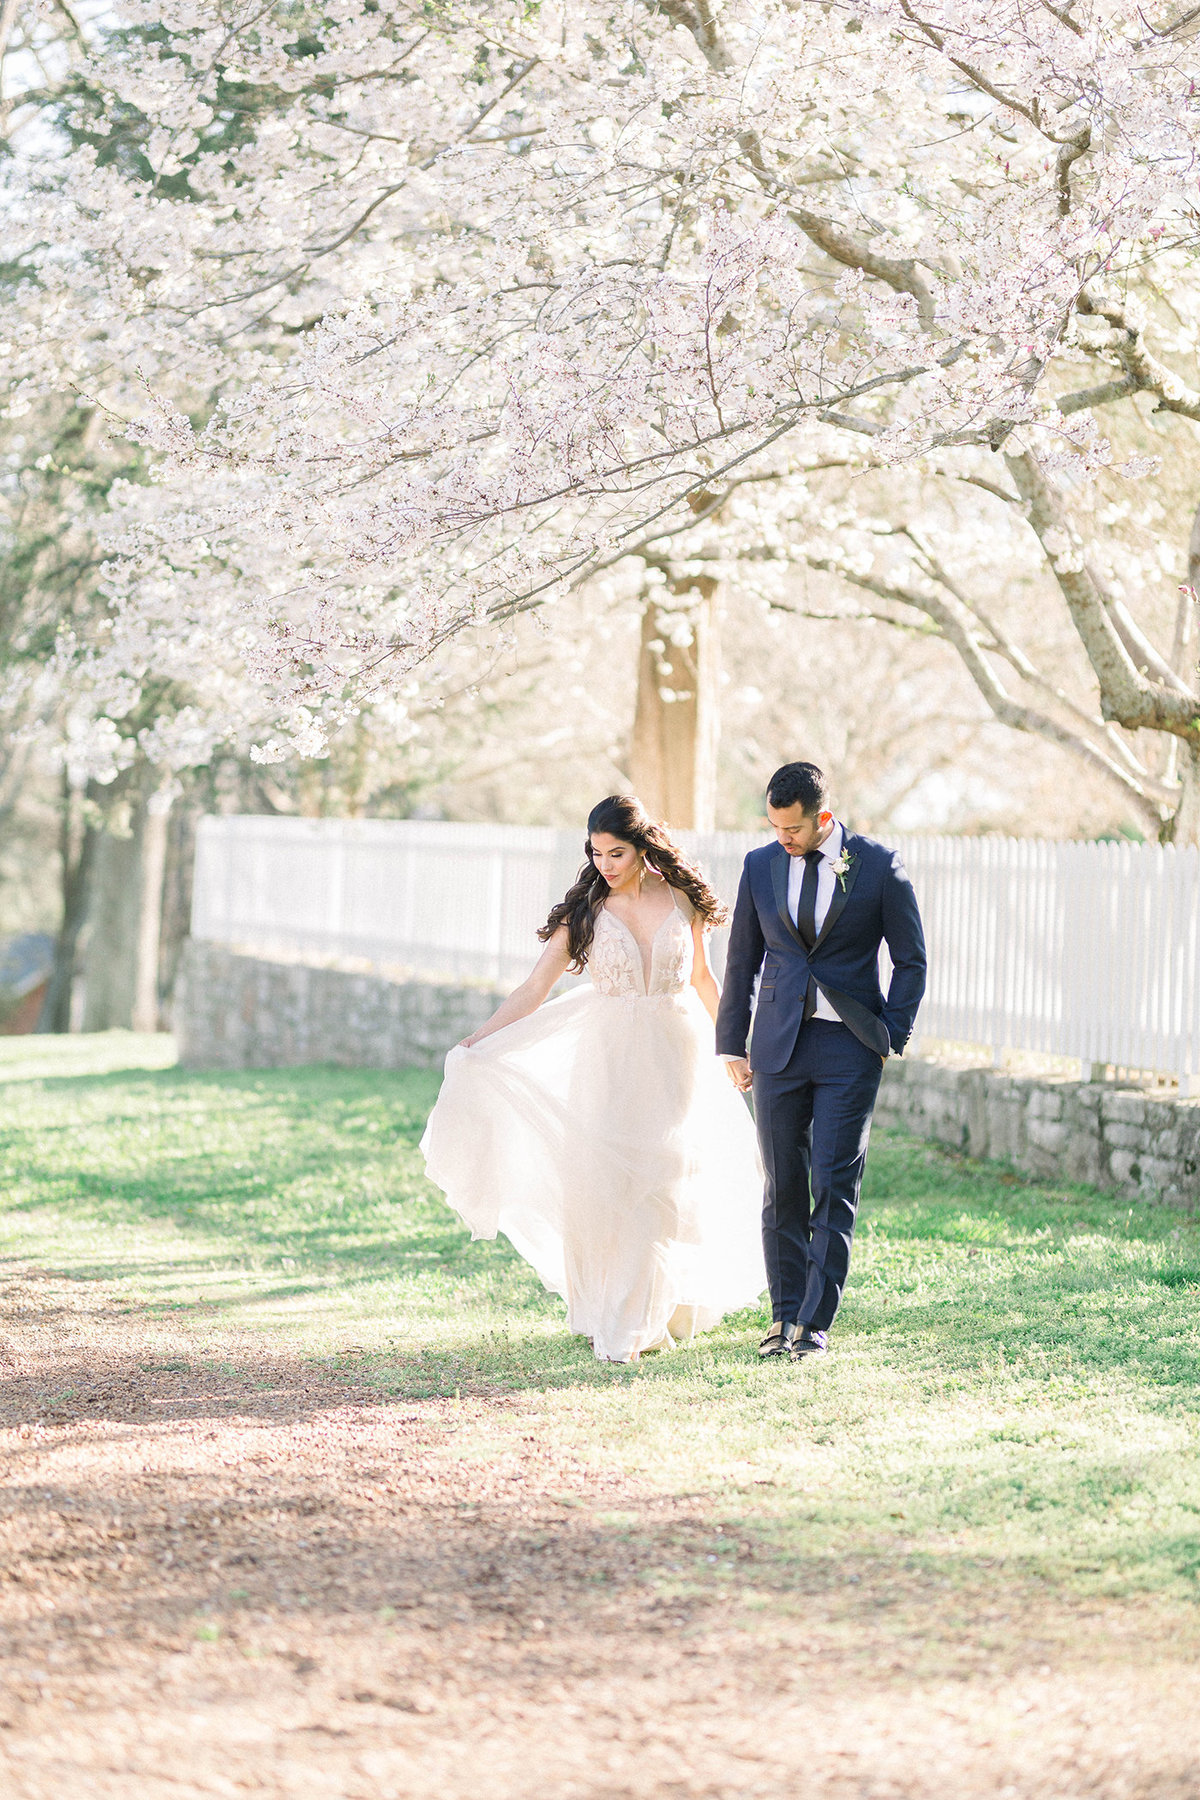 Cedarmont Nashville Editorial - Sarah Sunstrom Photography - Fine Art Wedding Photographer - 18